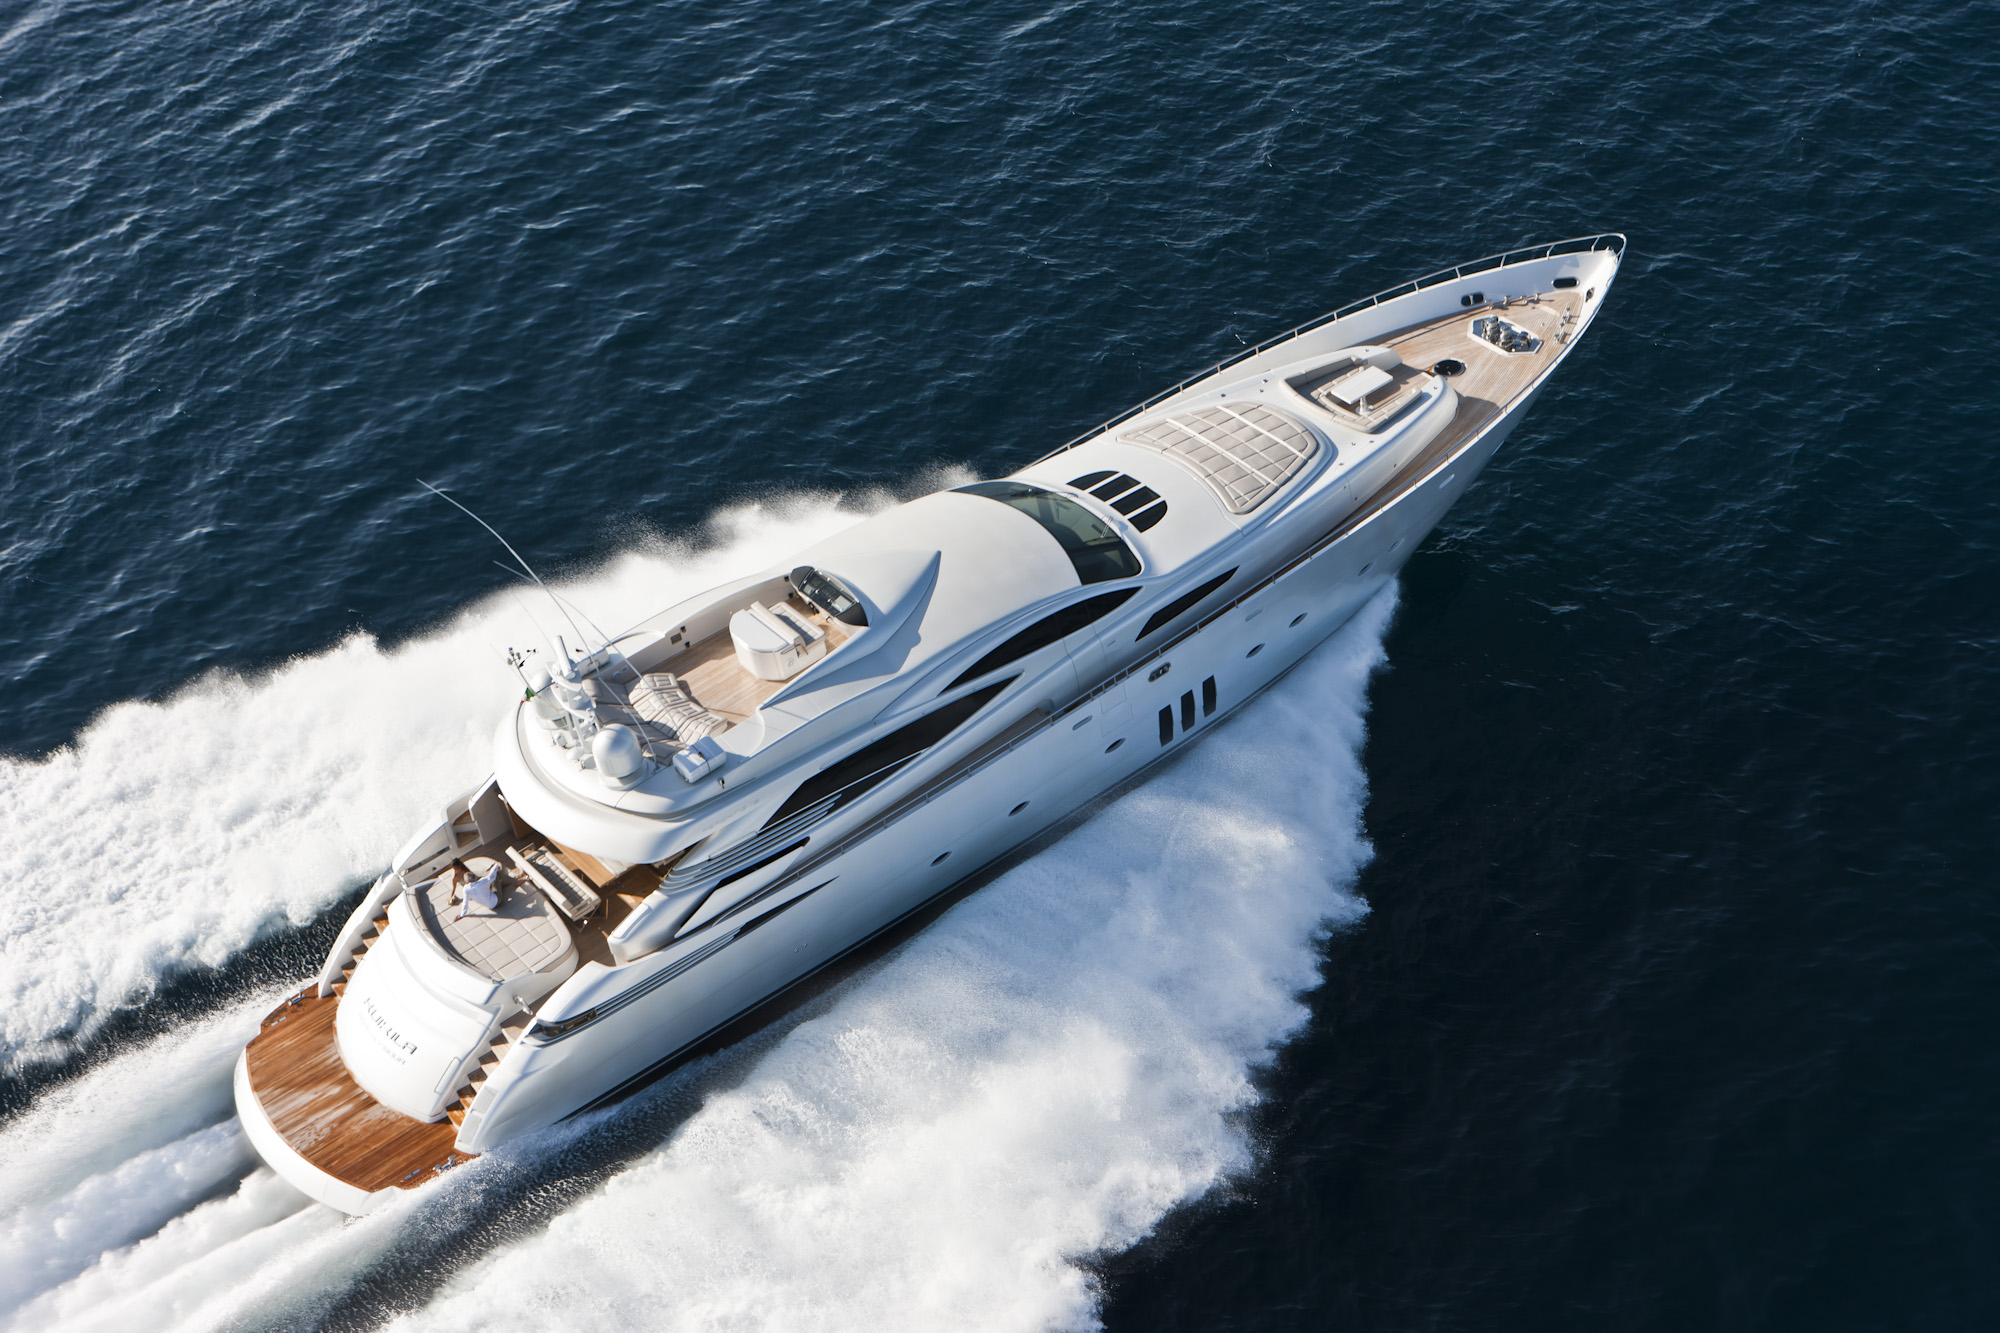 M/Y KUIKILA specs with detailed specification and builder summary